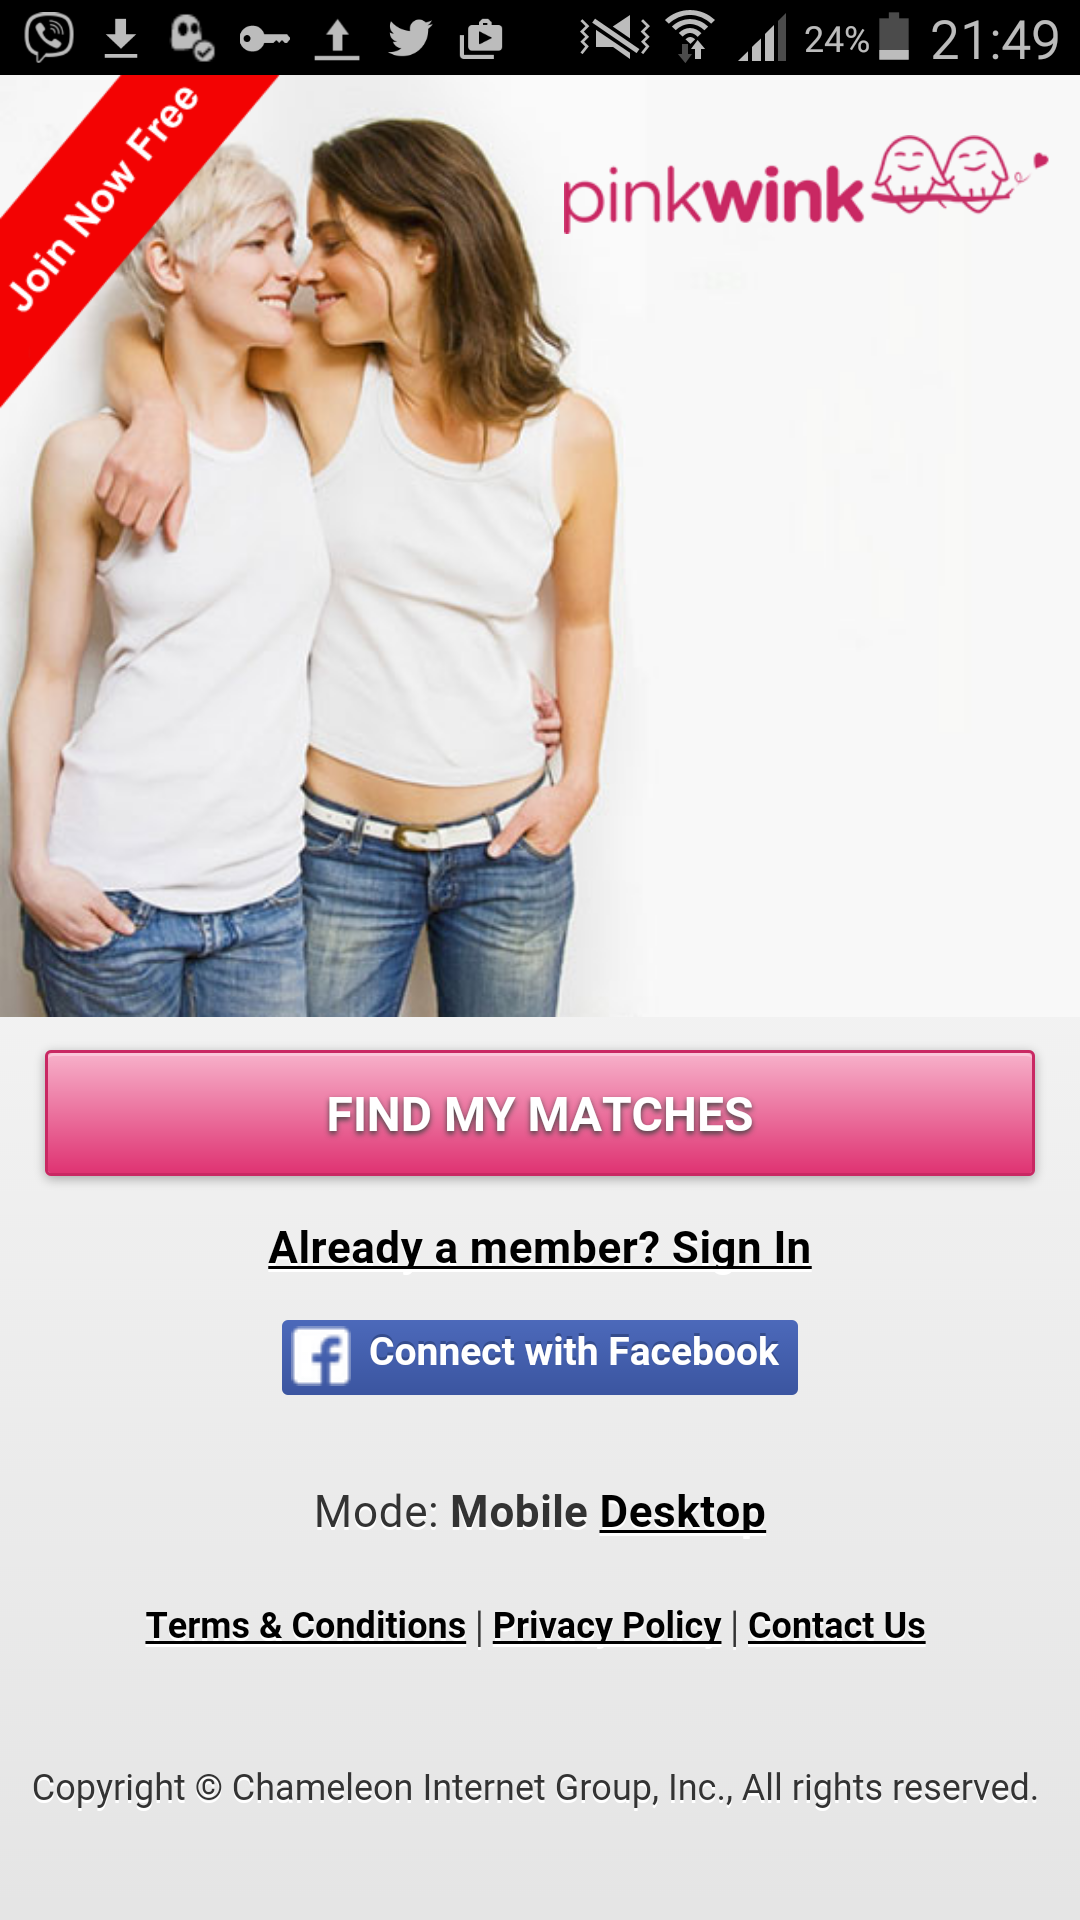 quogue lesbian dating site 100% free online dating in east quogue 1,500,000 daily active members.